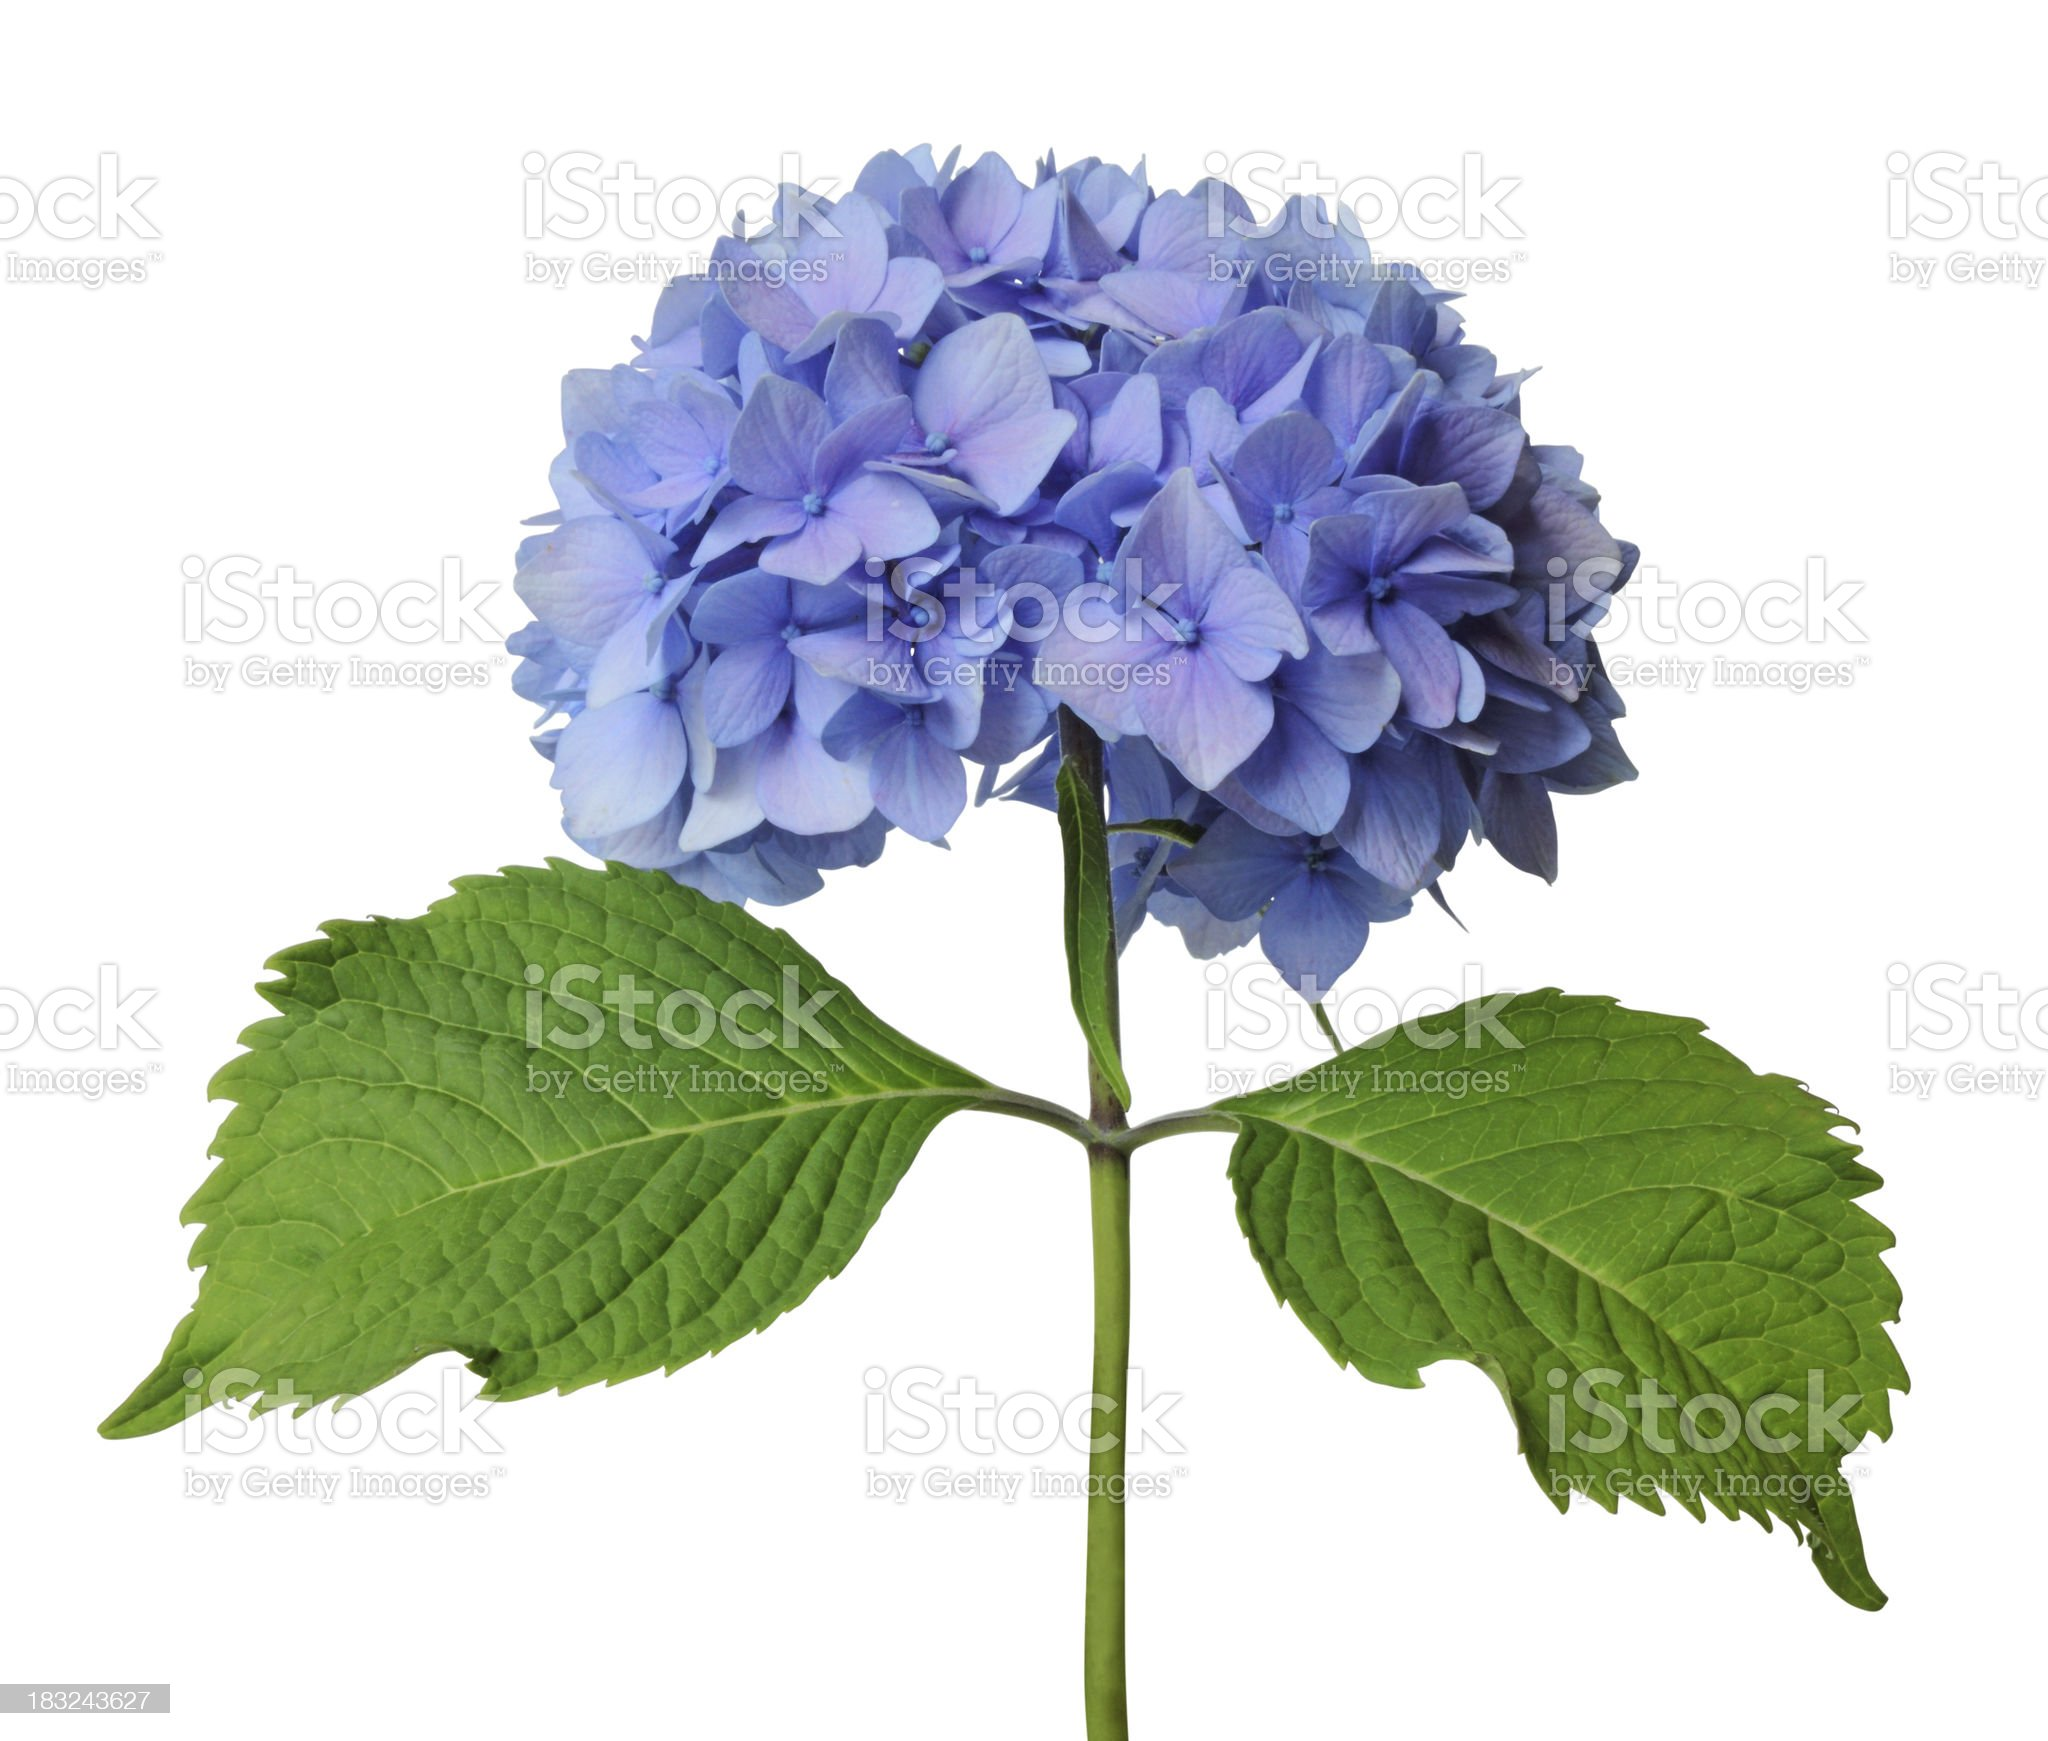 Blue hydrangea with green stem on white background royalty-free stock photo